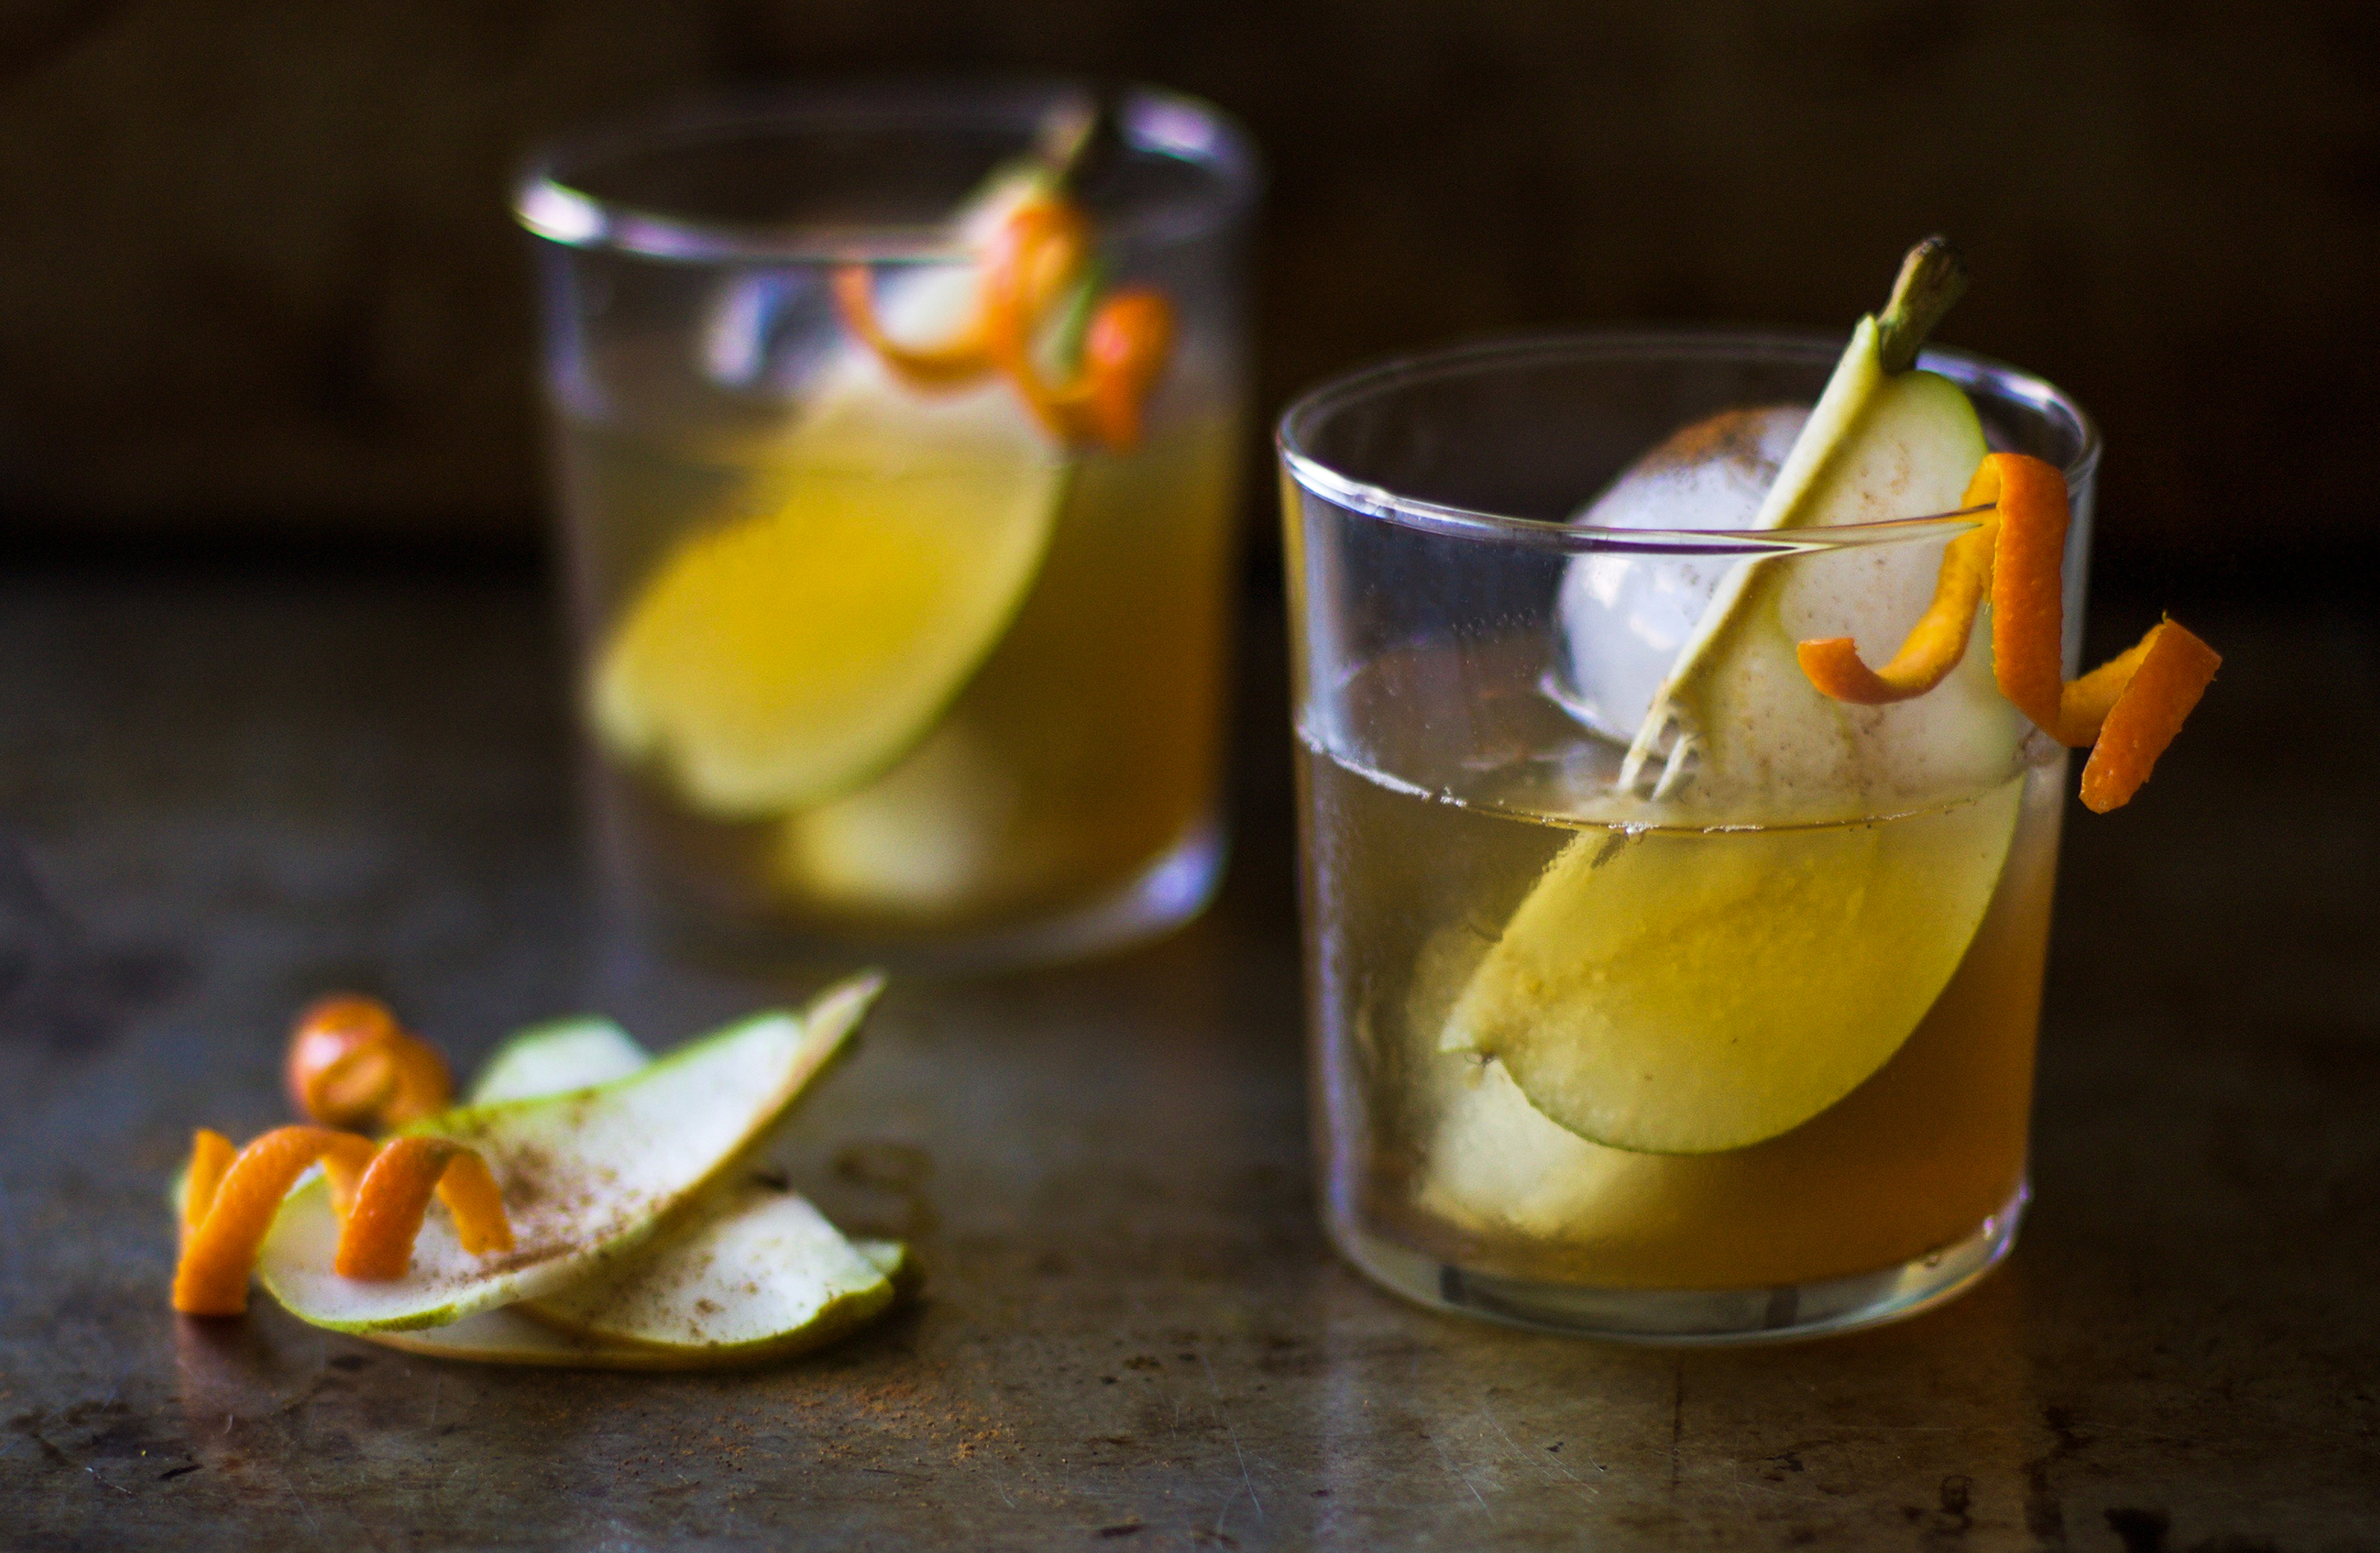 Spiced Pear Bourbon Old Fashioned: My Diary of Us